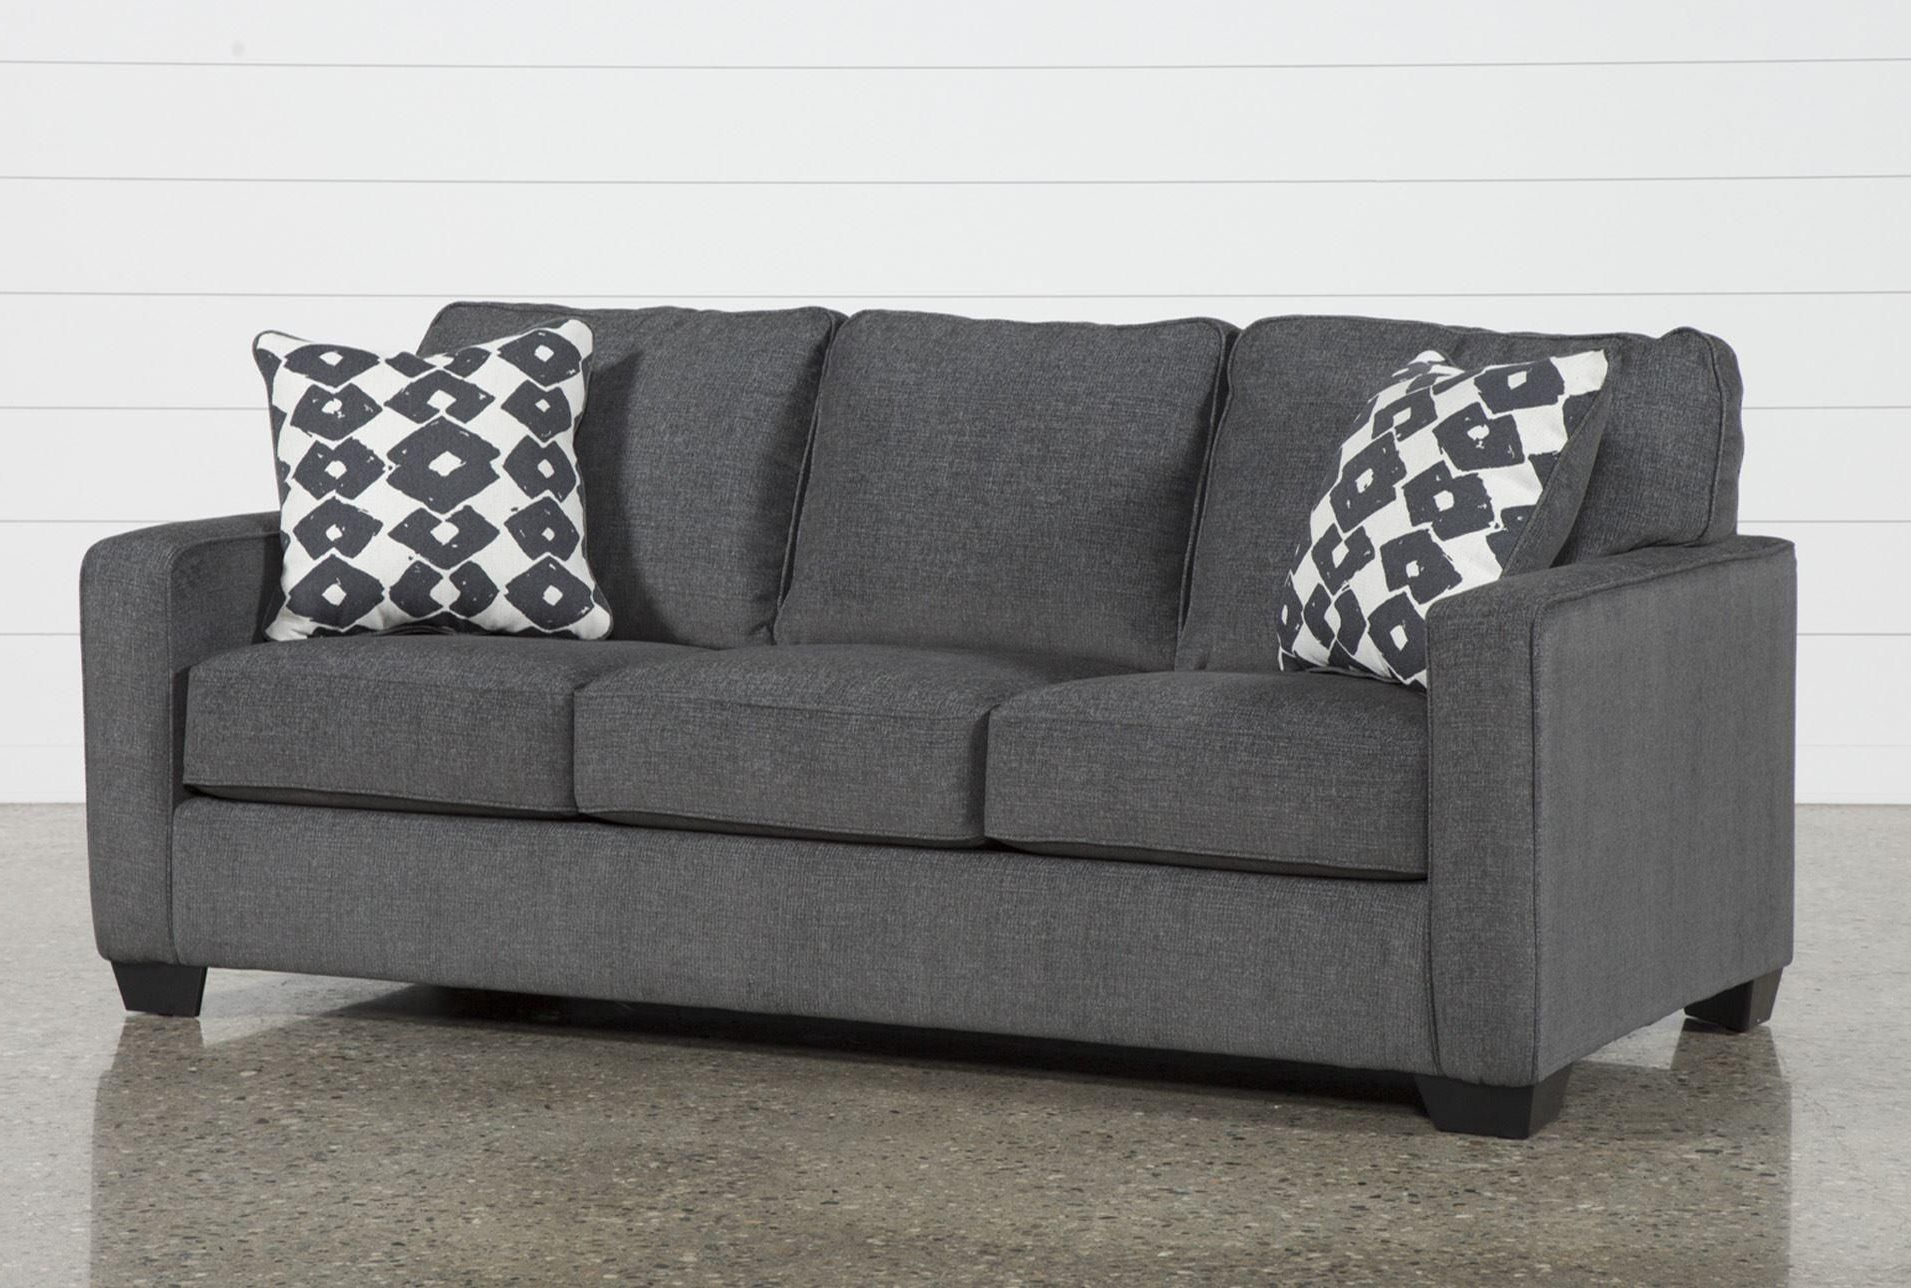 Furniture:great Replacement Sofa Cushions Exeter Also Sofa For Best And Newest Mcdade Ash Sofa Chairs (Gallery 9 of 20)